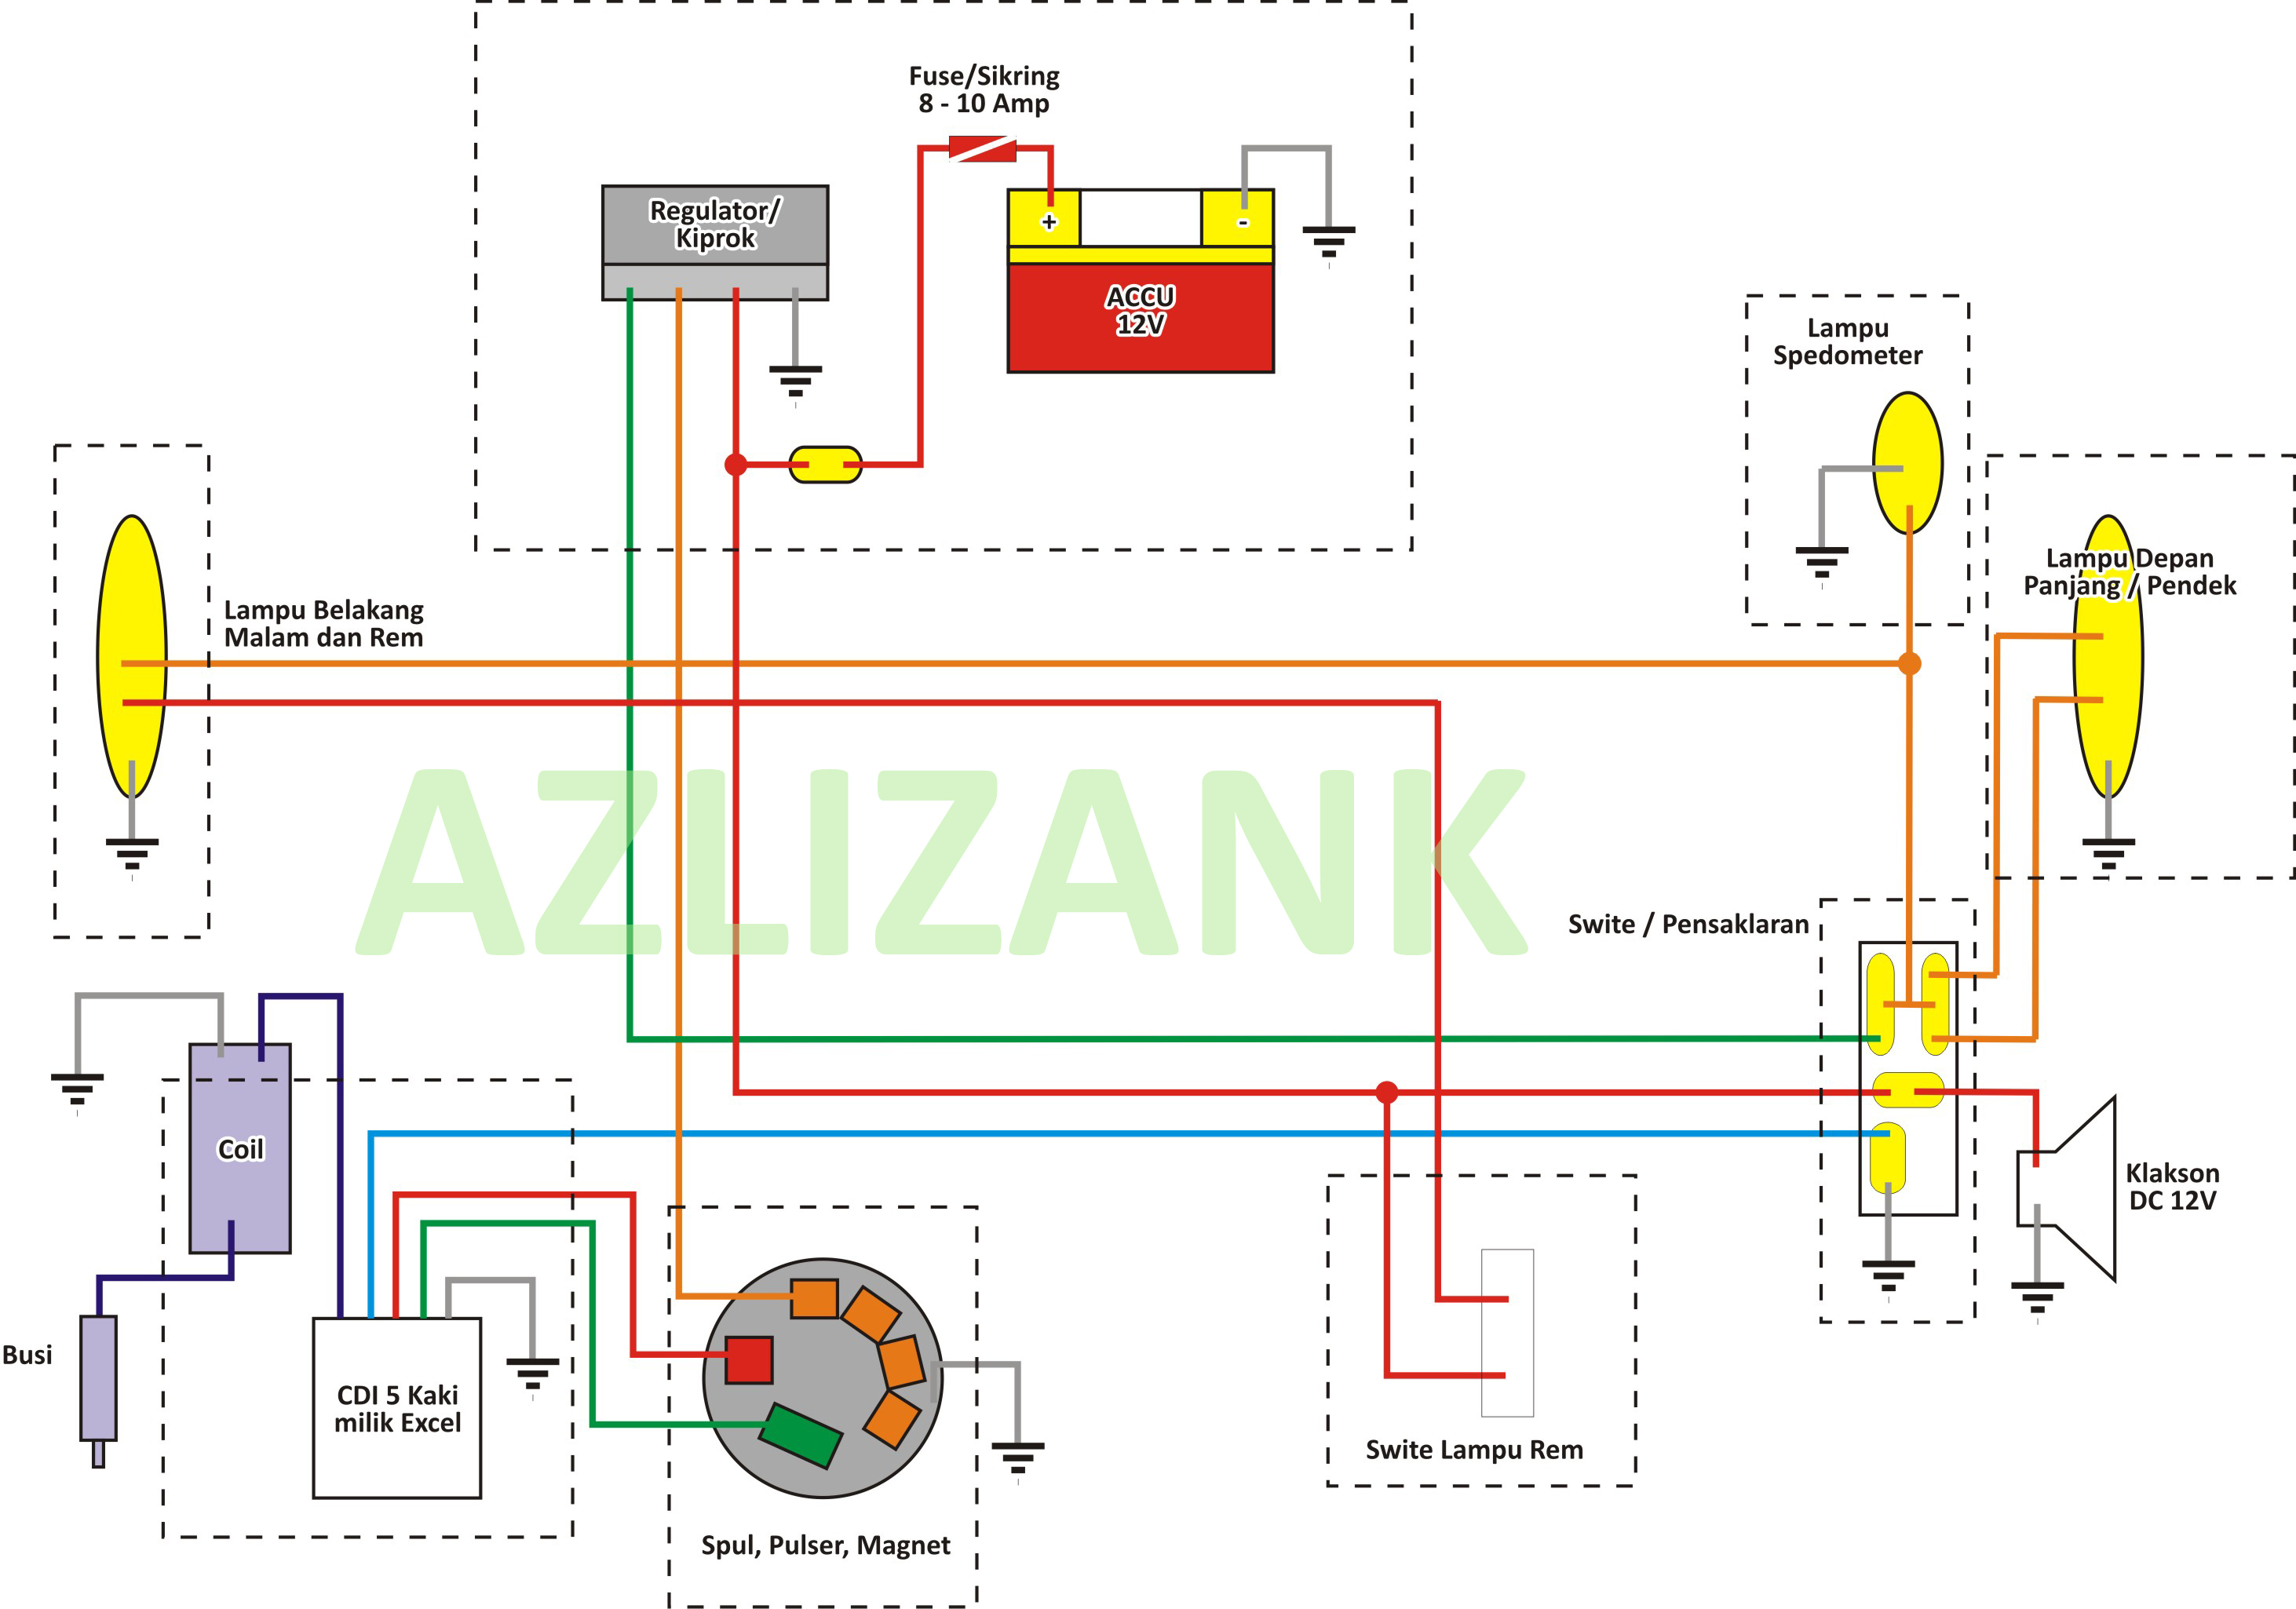 Vespa Vo Wiring Diagram - Electricity Site on basic wire art, basic wire codes, basic phone wiring diagram, basic switch wiring diagram, electrical wiring diagrams, basic wire techniques, basic automotive wiring diagram, basic wire patterns,